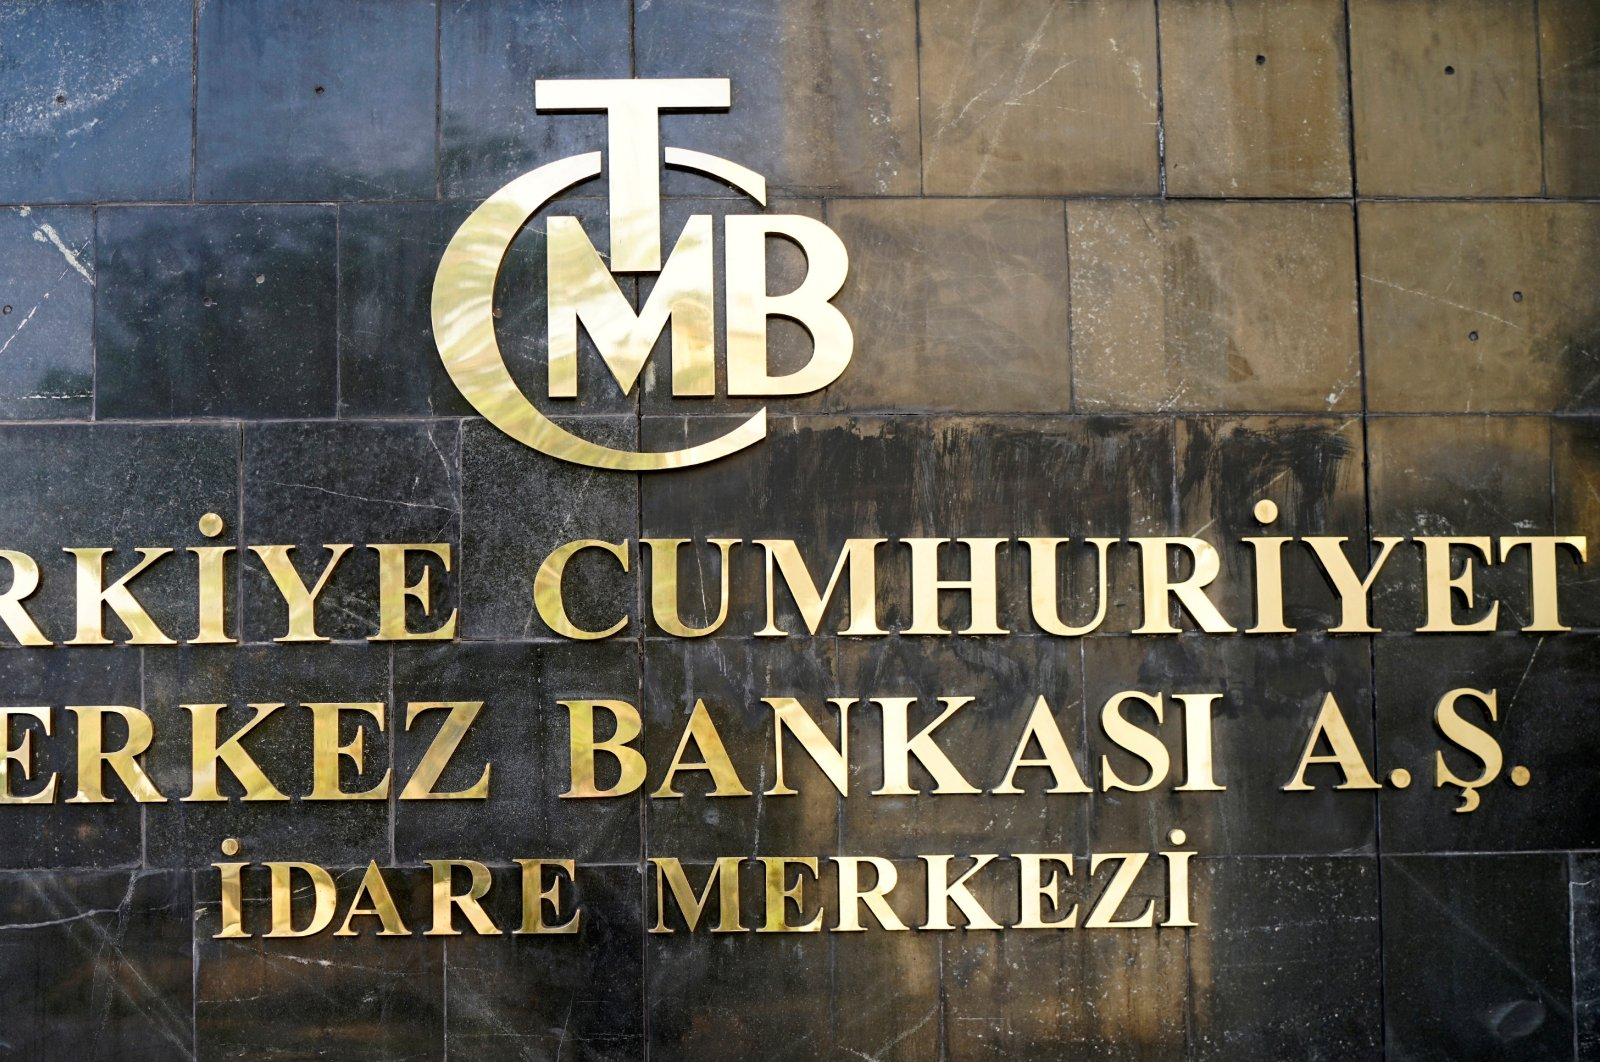 A logo of Turkey's central bank at the entrance of the bank's headquarters in capital Ankara, Turkey, April 19, 2020. (Reuters Photo)